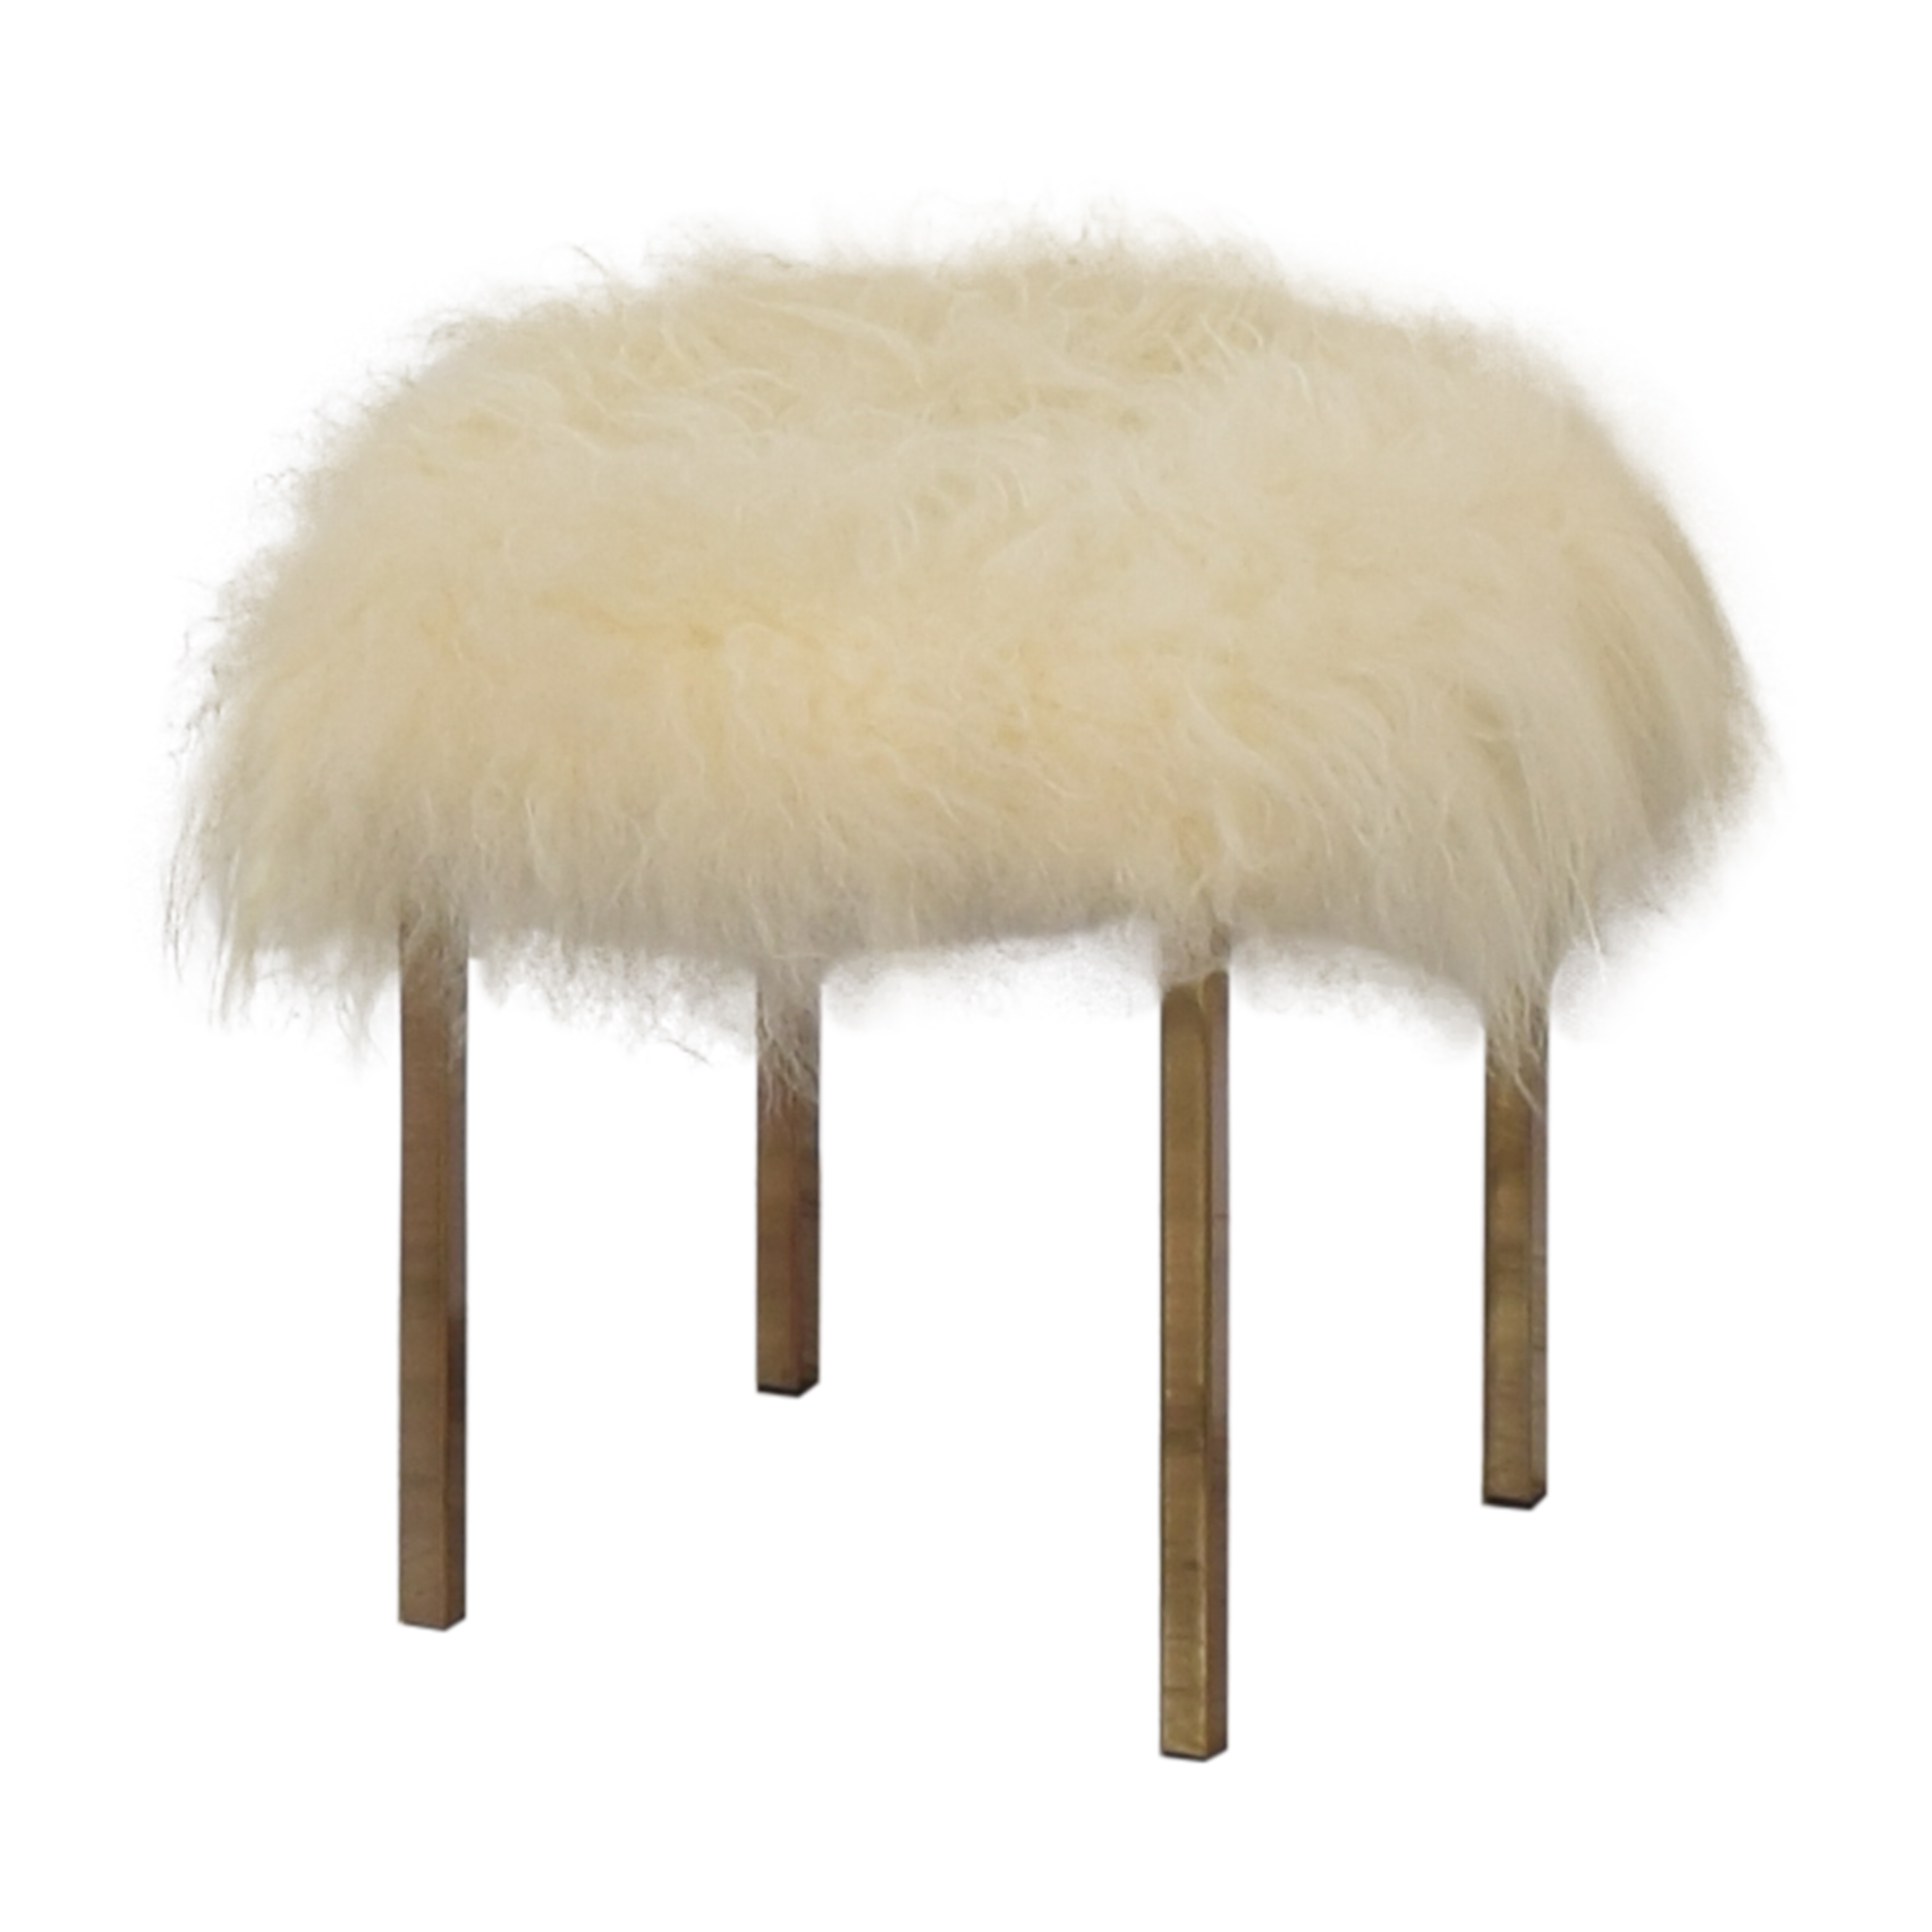 CB2 Sheepskin Stool / Chairs